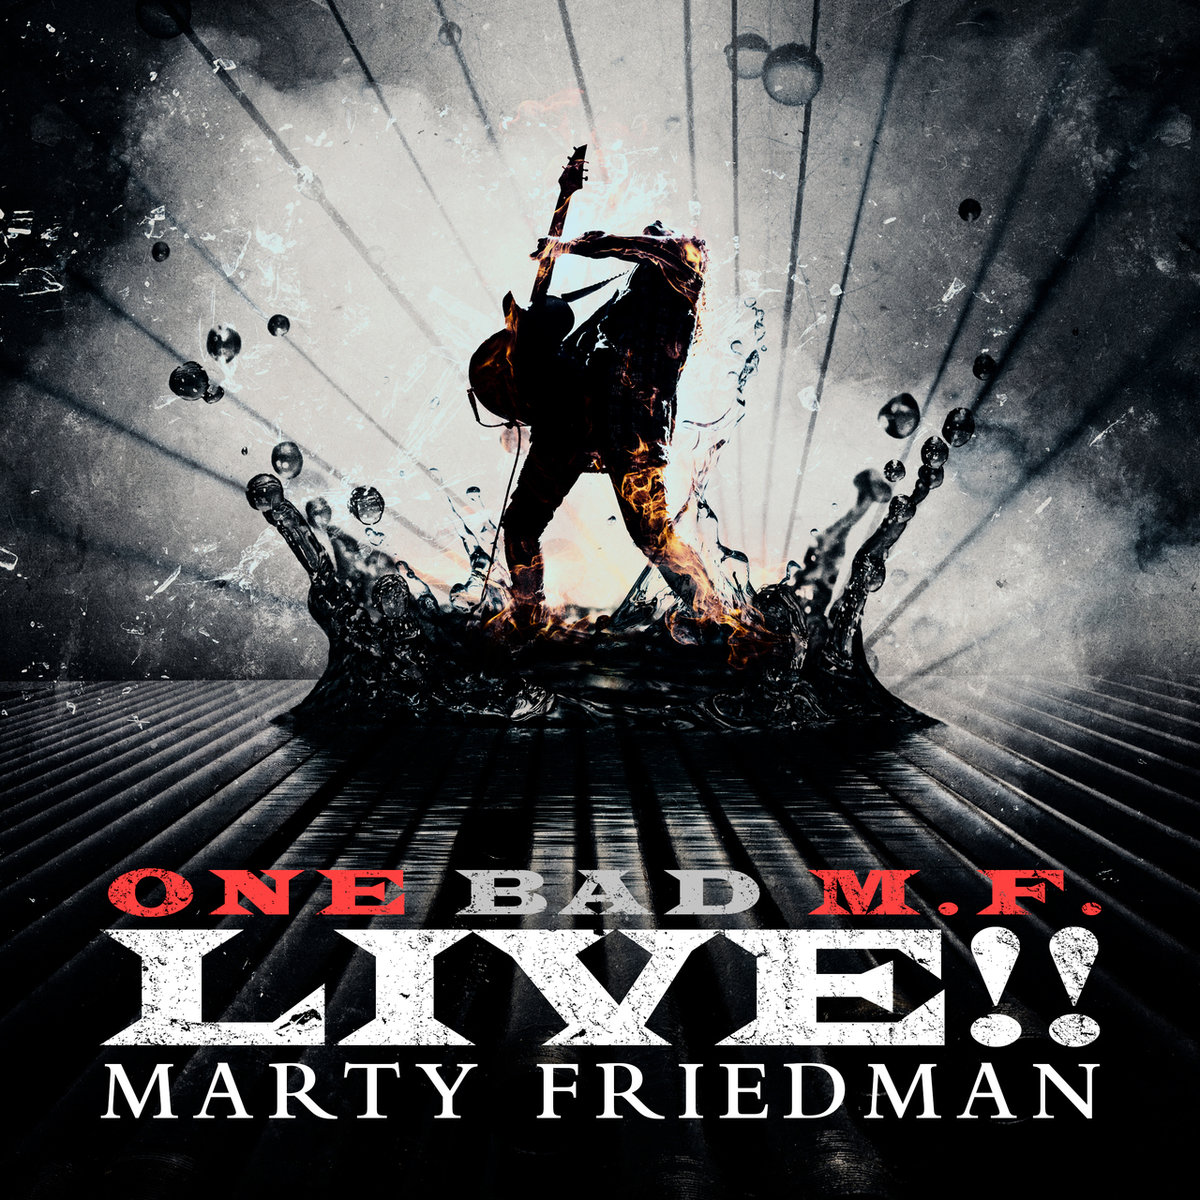 Marty Friedman : One Bad M.F. Live!!